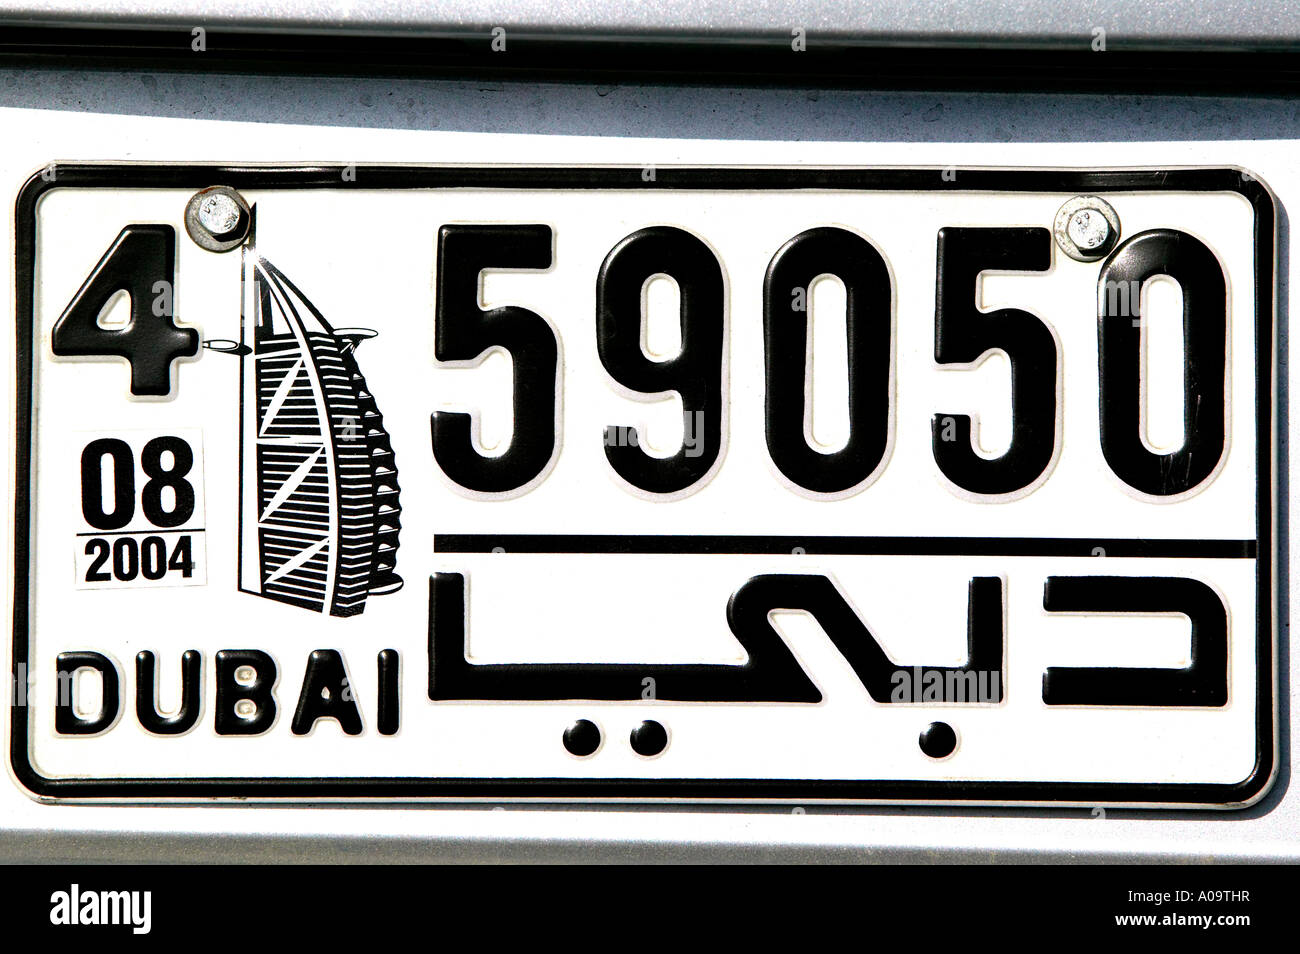 VAE Autokennzeichen Registration Number from Dubai - Stock Image